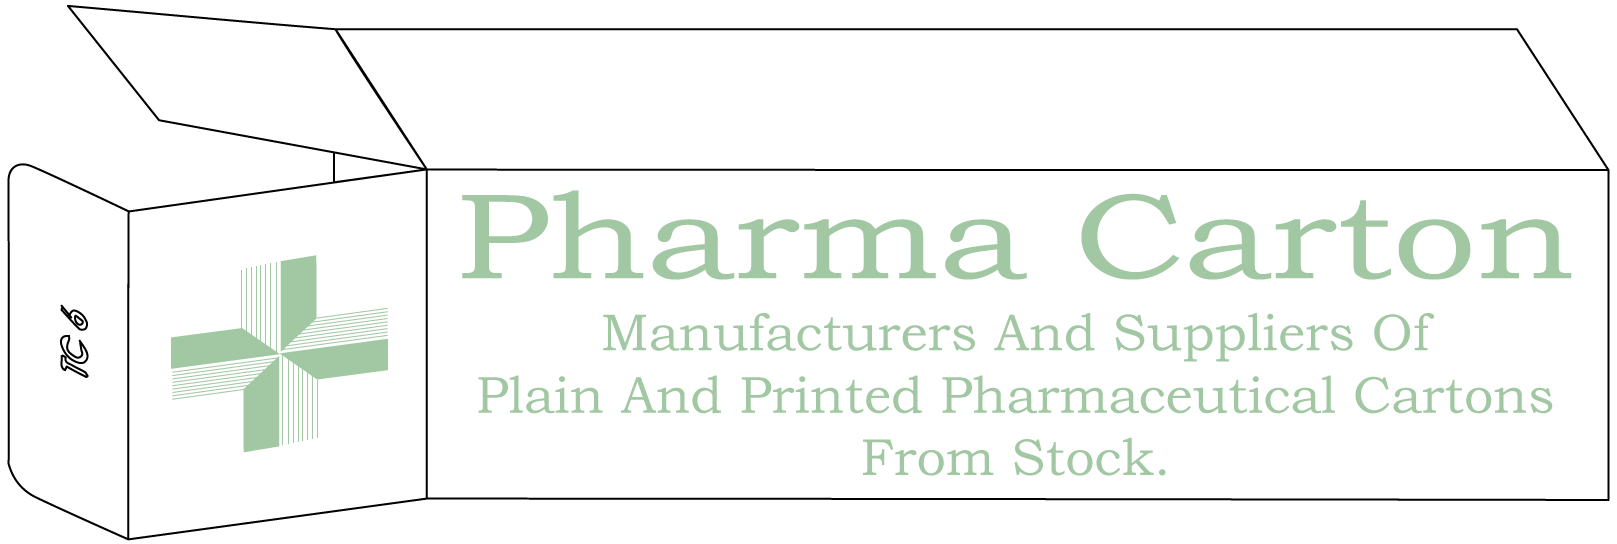 Pharma Carton ltd logo